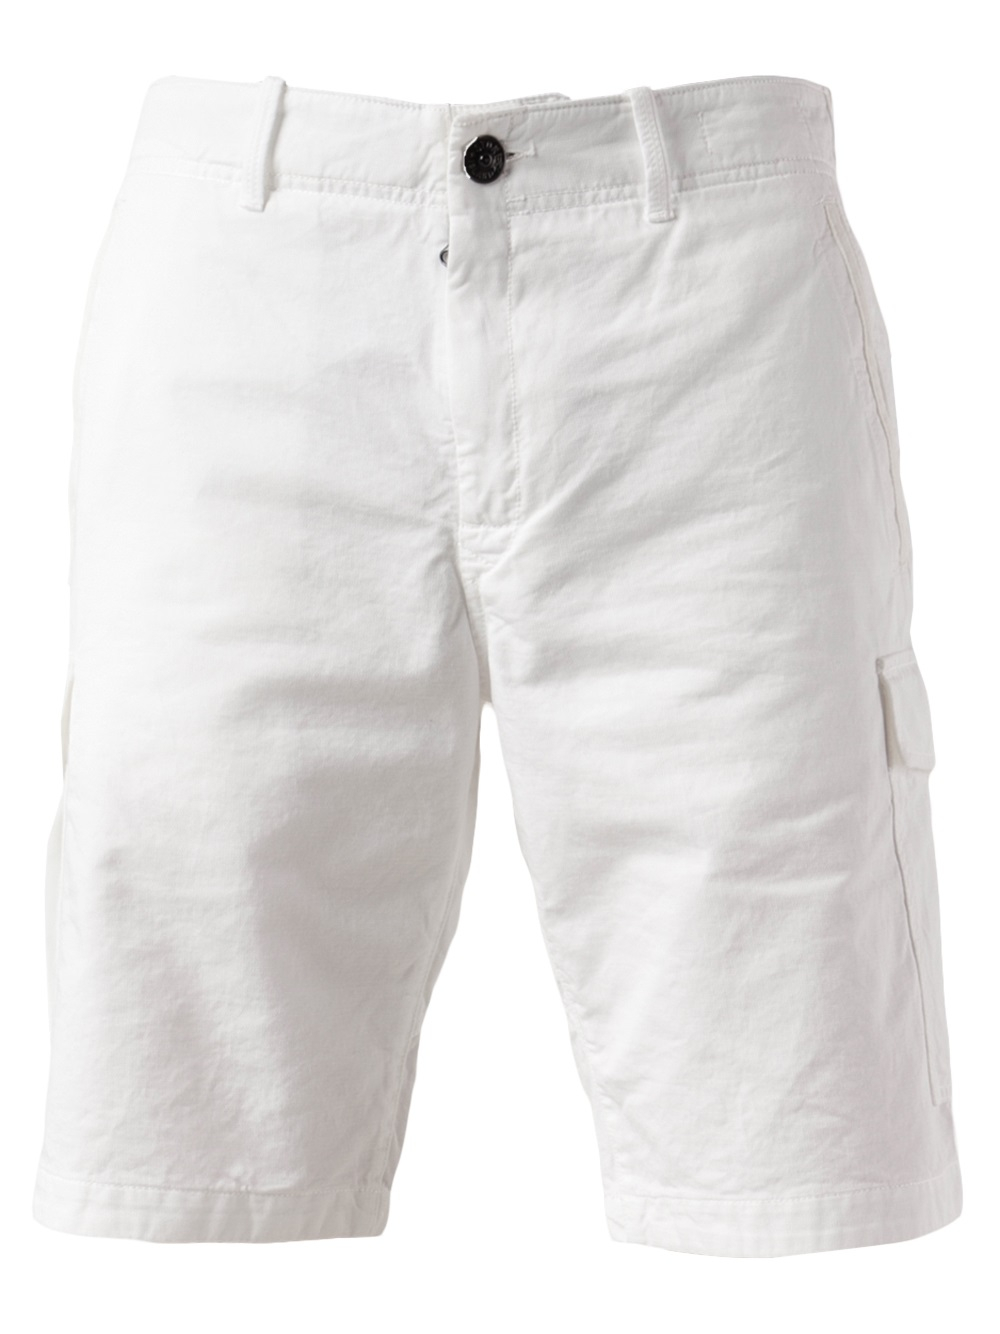 06a32b9d Stone Island Cargo Short in White for Men - Lyst